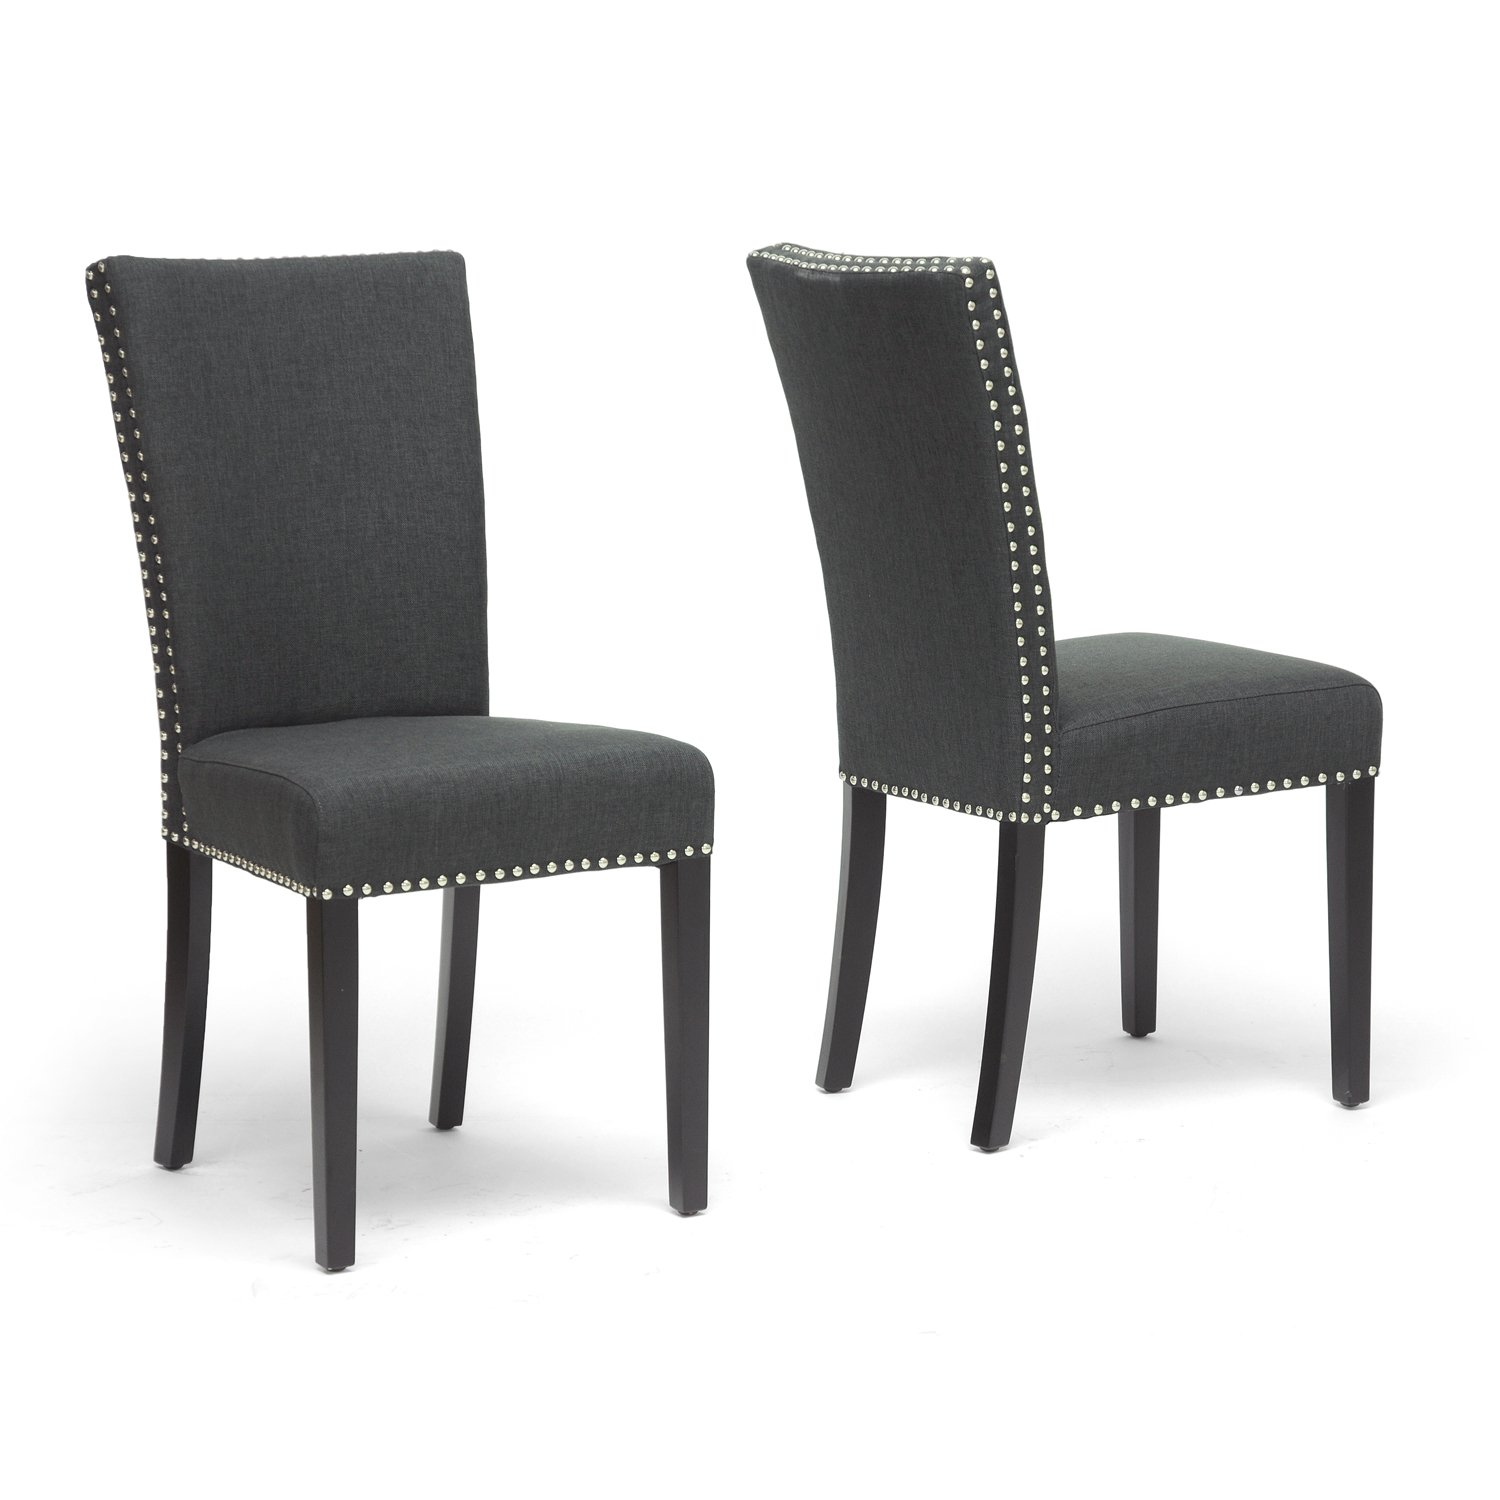 Amazon.com - Baxton Studio Harrowgate Linen Modern Dining Chair ...